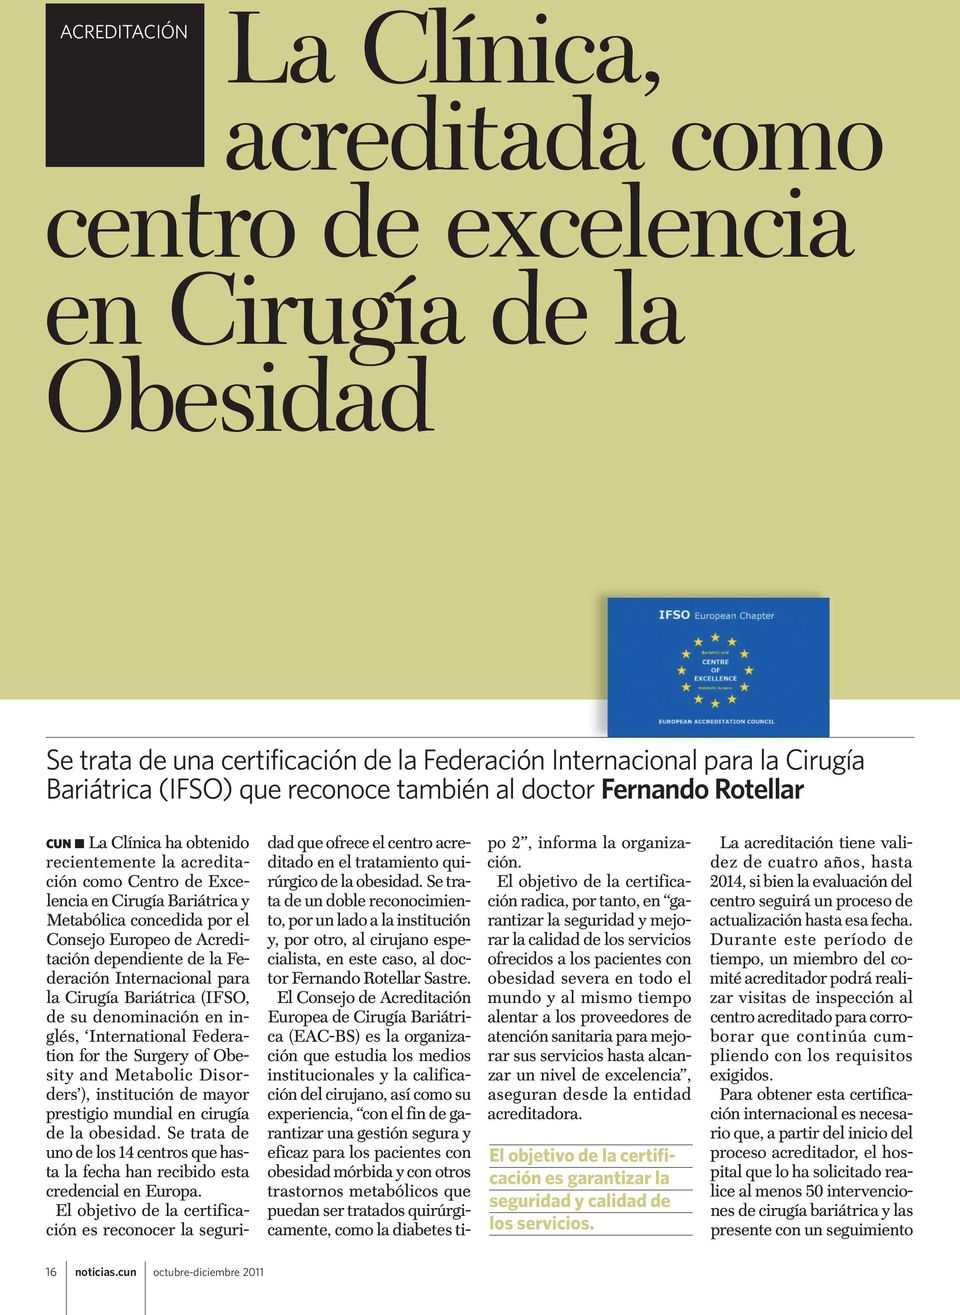 Acreditación dependiente de la Federación Internacional para la Cirugía Bariátrica (IFSO, de su denominación en inglés, International Federation for the Surgery of Obesity and Metabolic Disorders ),